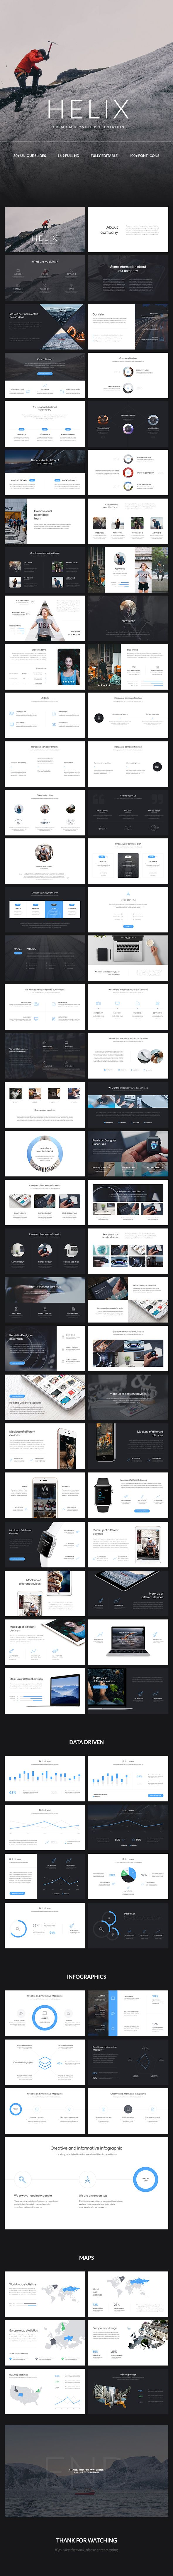 Helix Keynote Presentation Template. Download here: http://graphicriver.net/item/helix-keynote-presentation/15455808?ref=ksioks